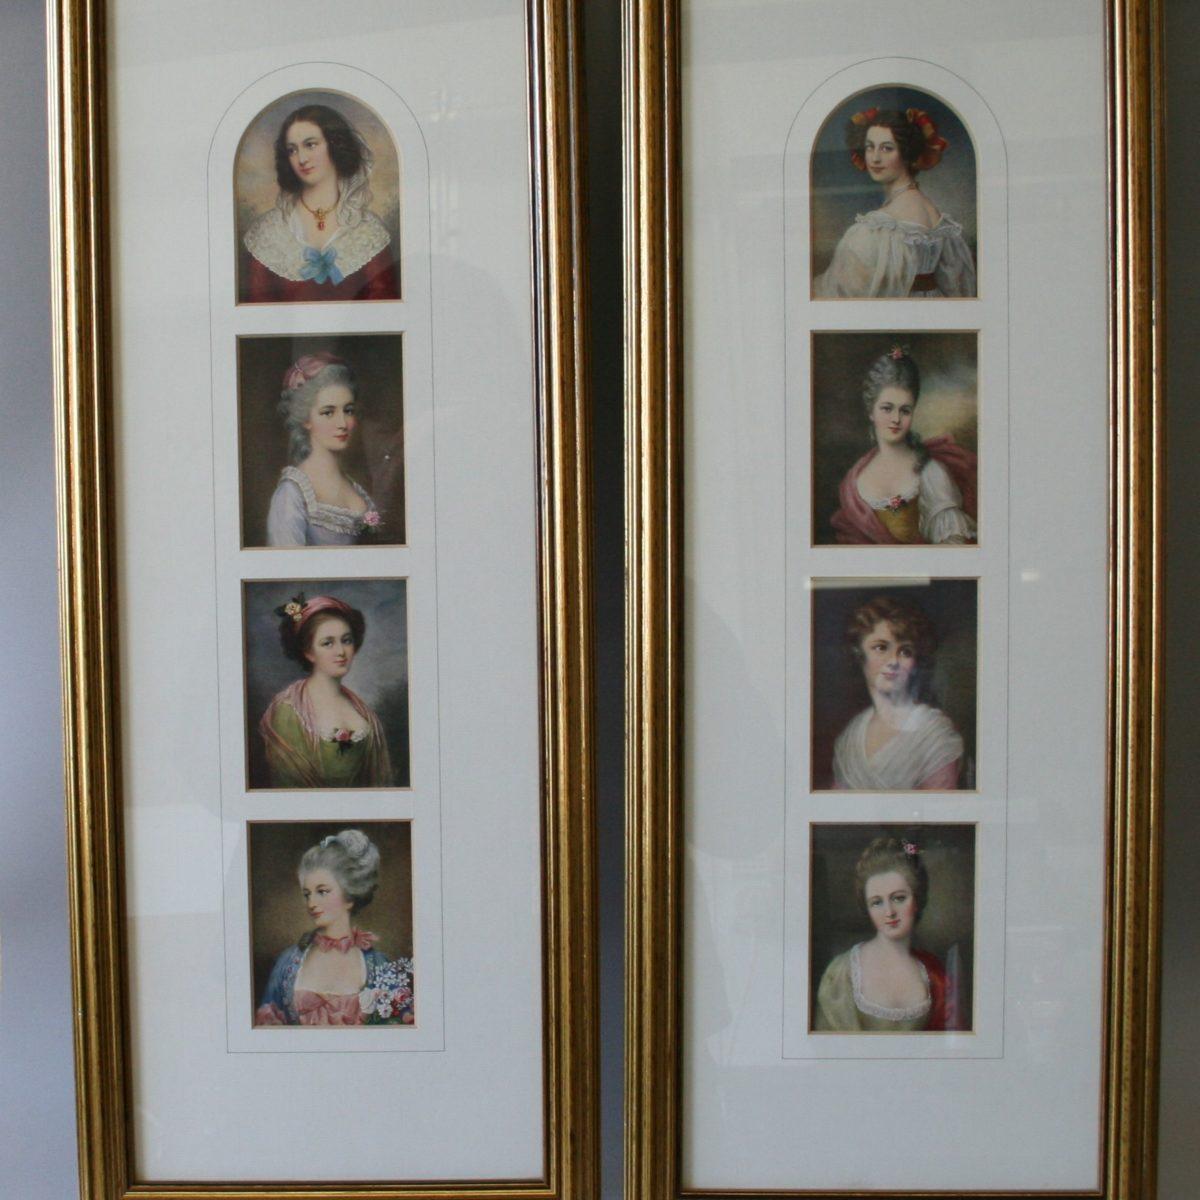 prints showing four small portraits of ladies